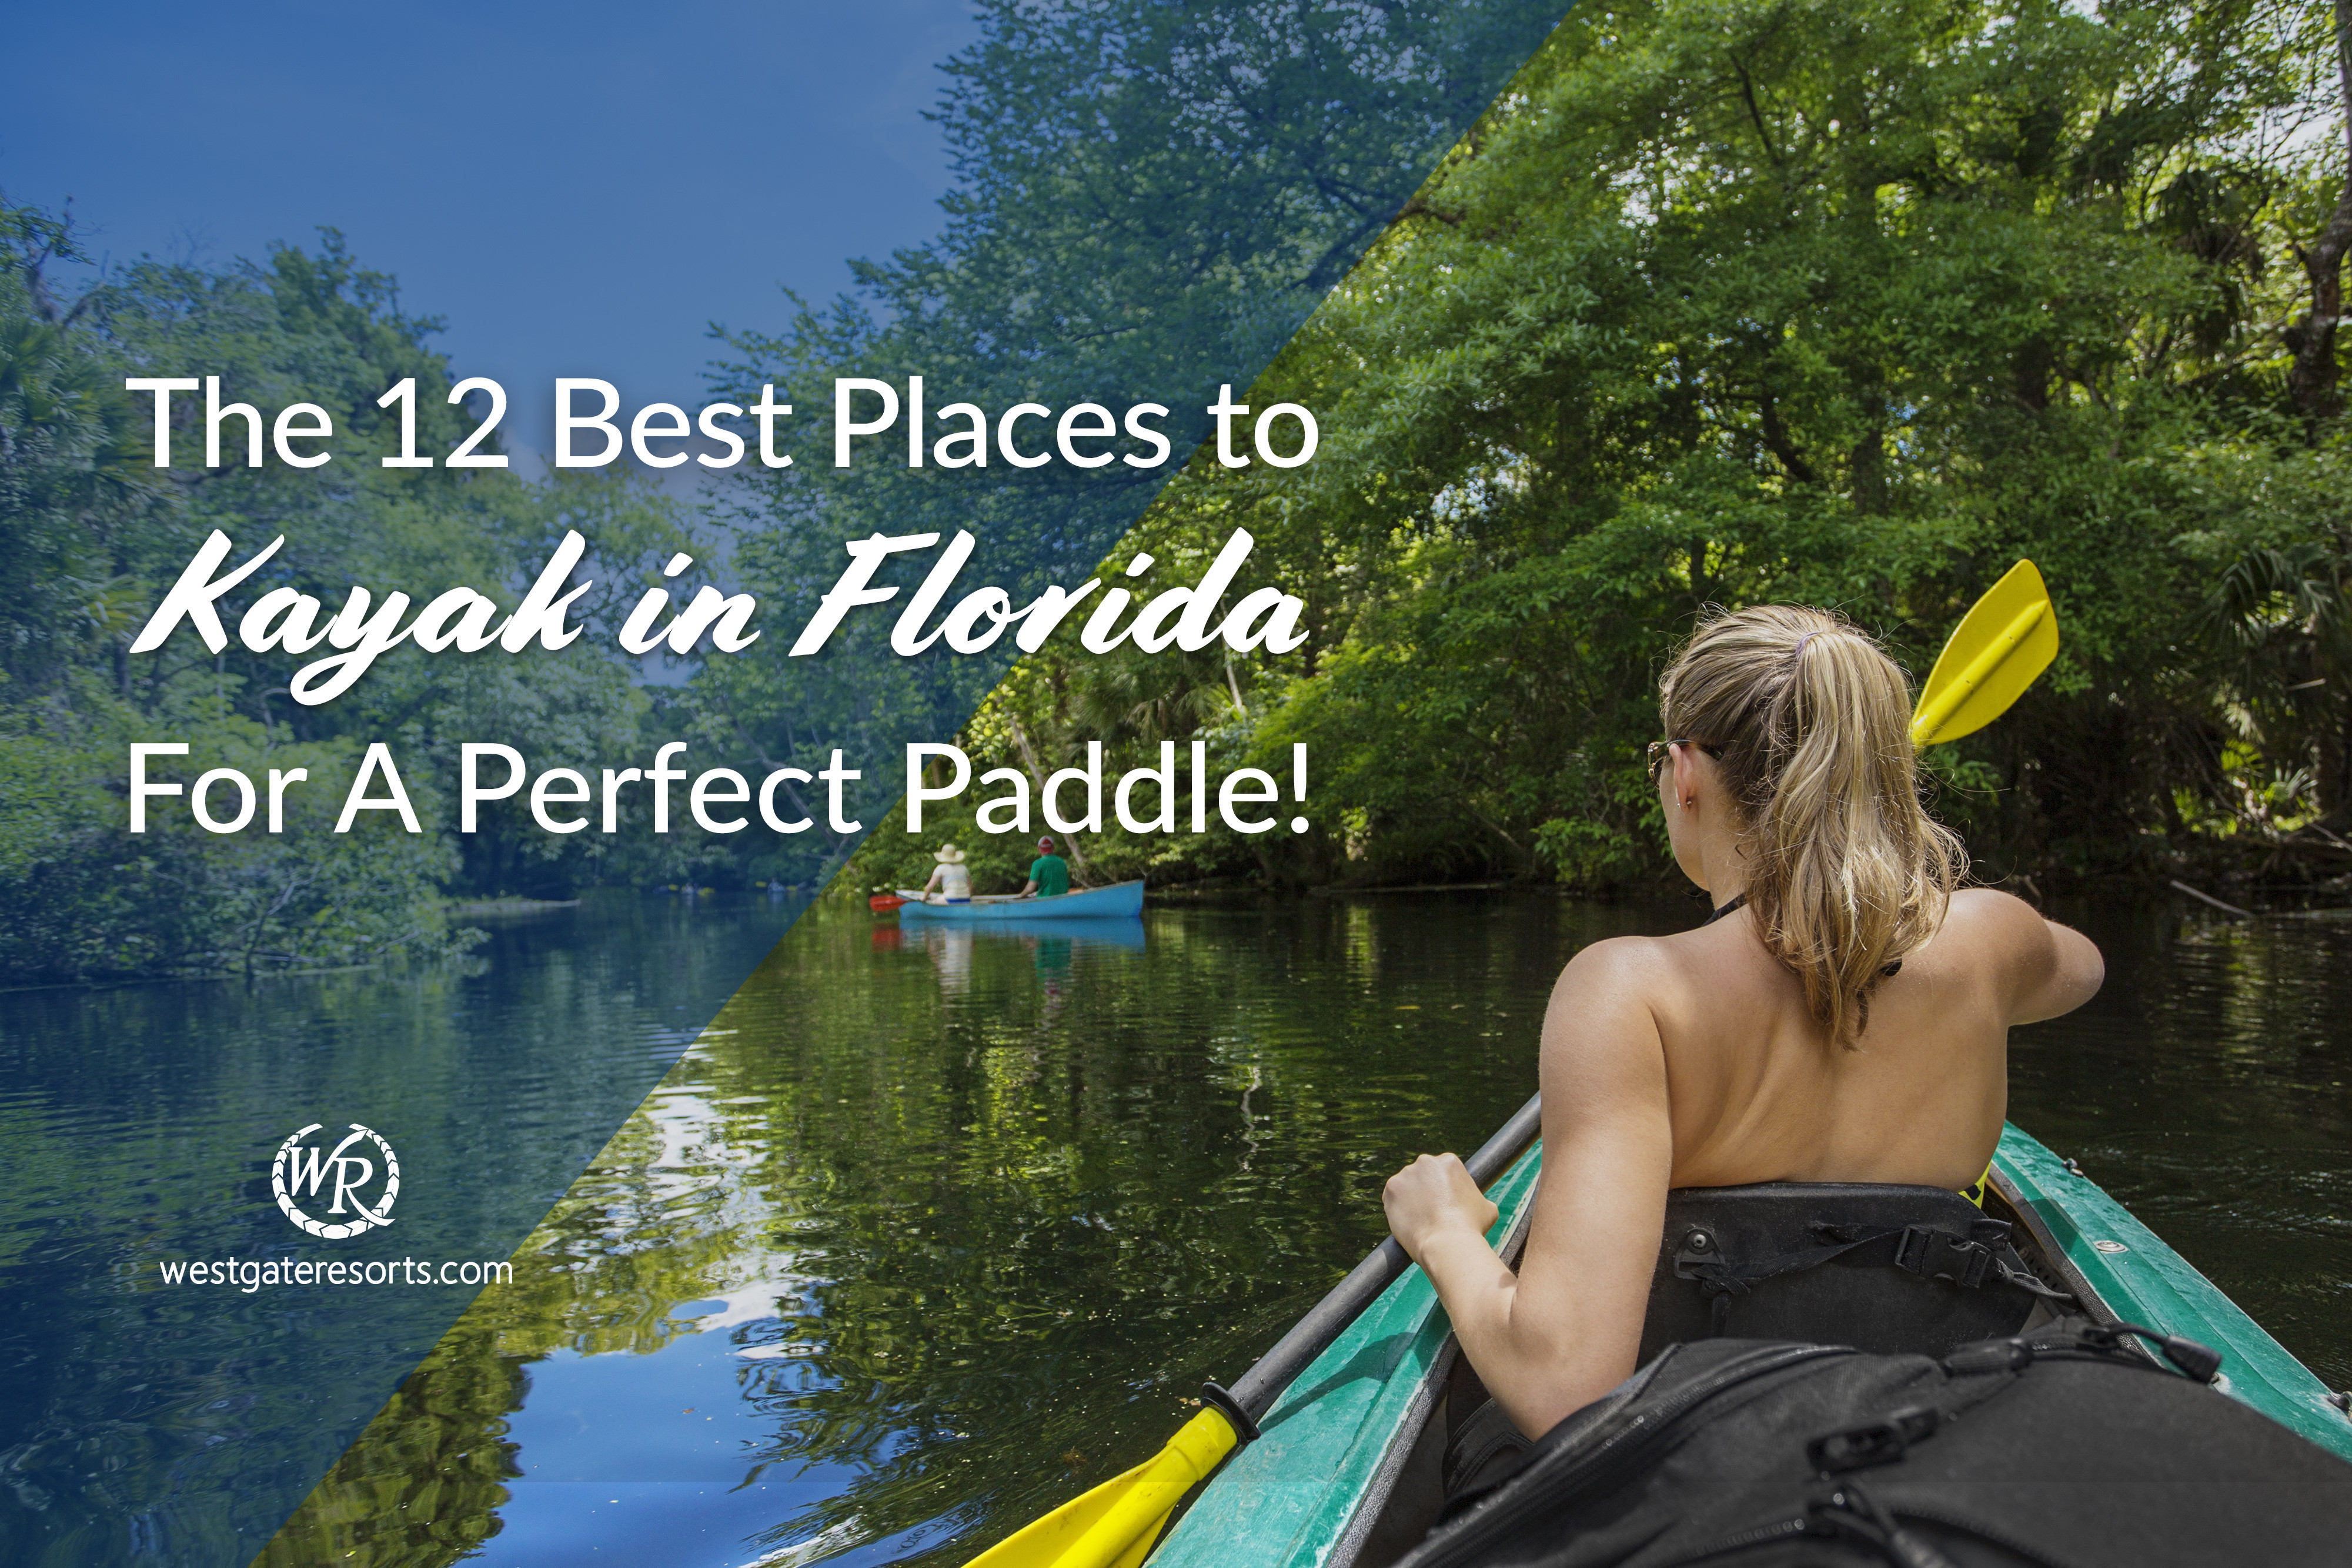 The 12 Best Places to Kayak in Florida For A Perfect Paddle!